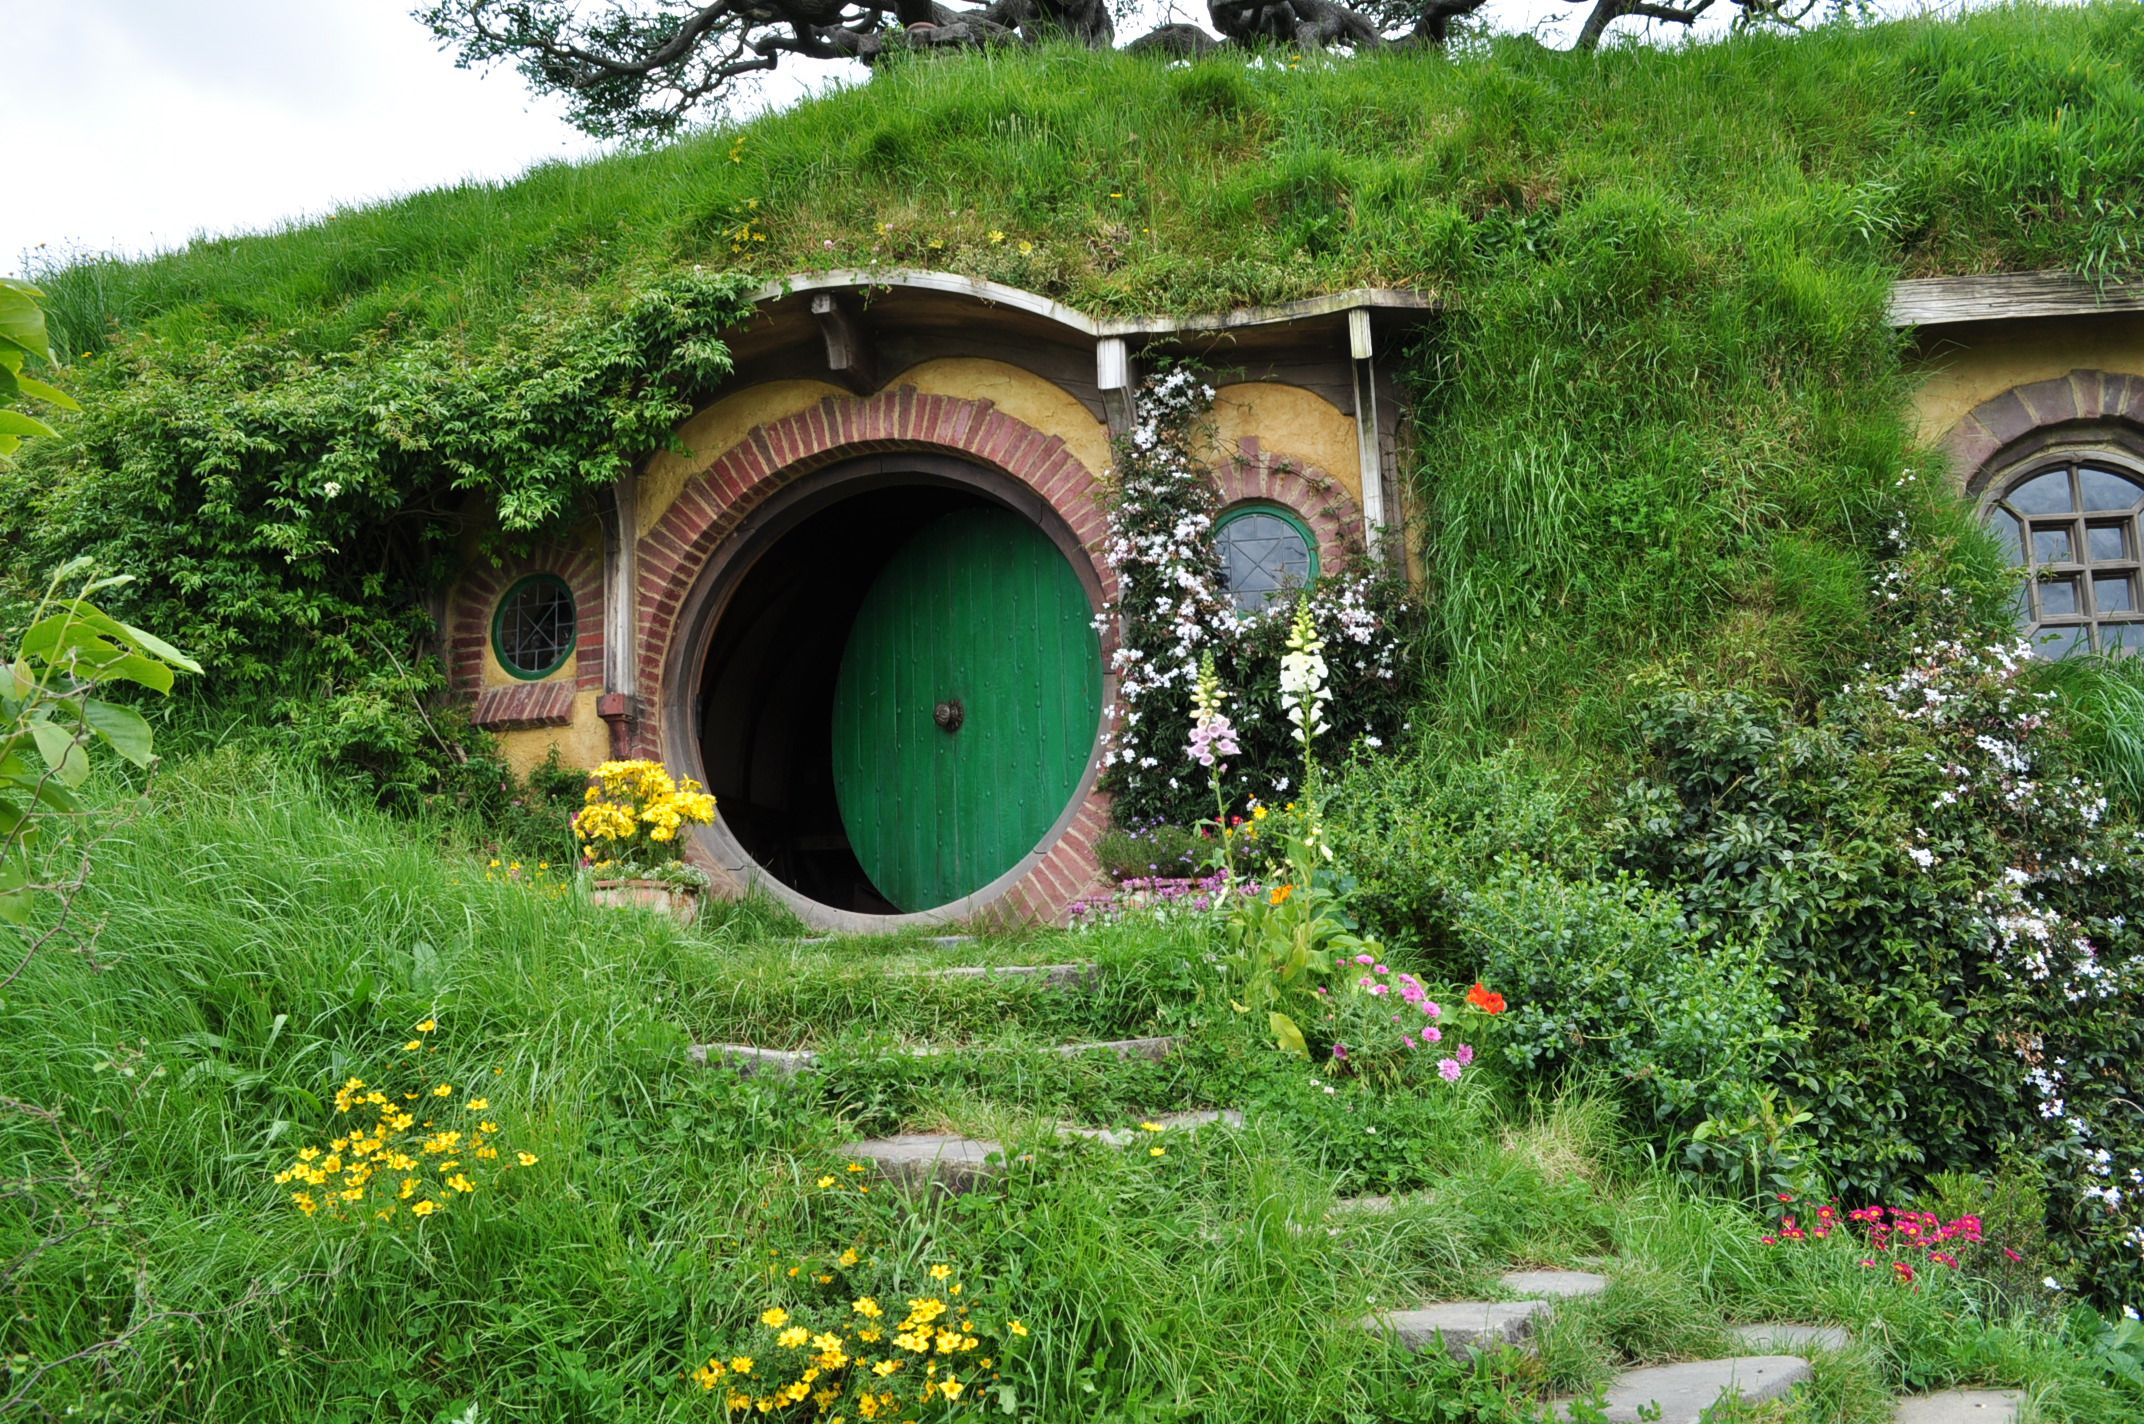 architecture hobbit house design with round door and